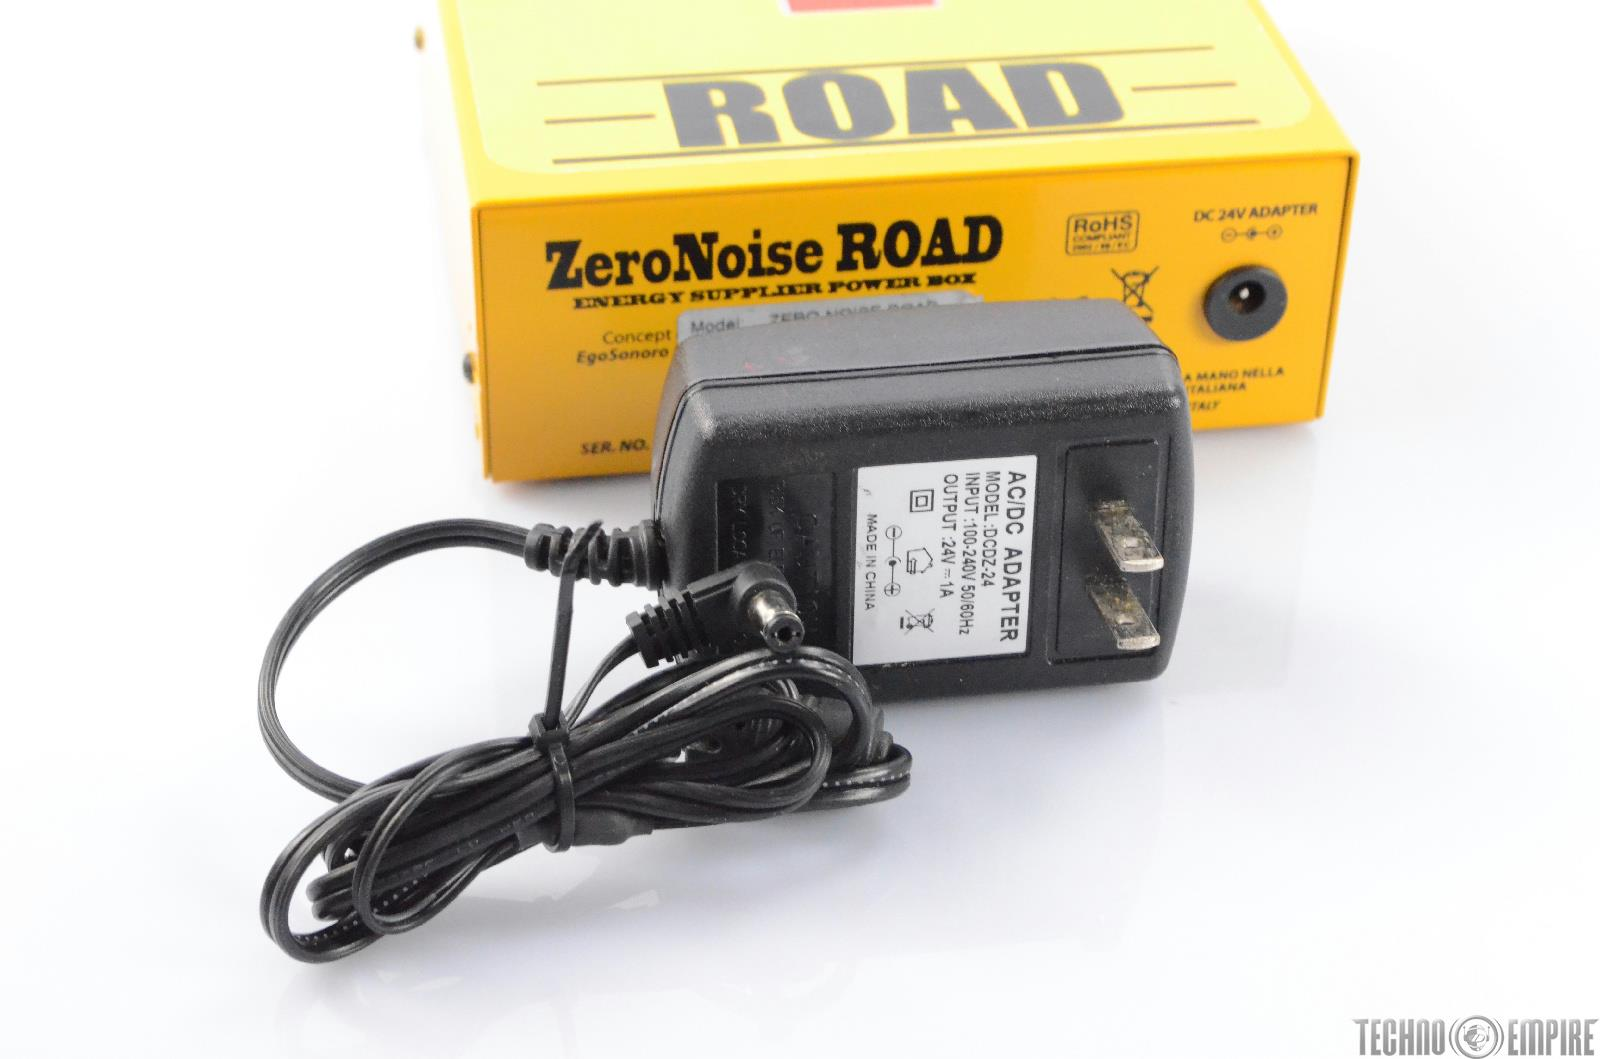 ego sonoro zero noise road rechargeable effect pedal board power supply 28821 techno empire. Black Bedroom Furniture Sets. Home Design Ideas